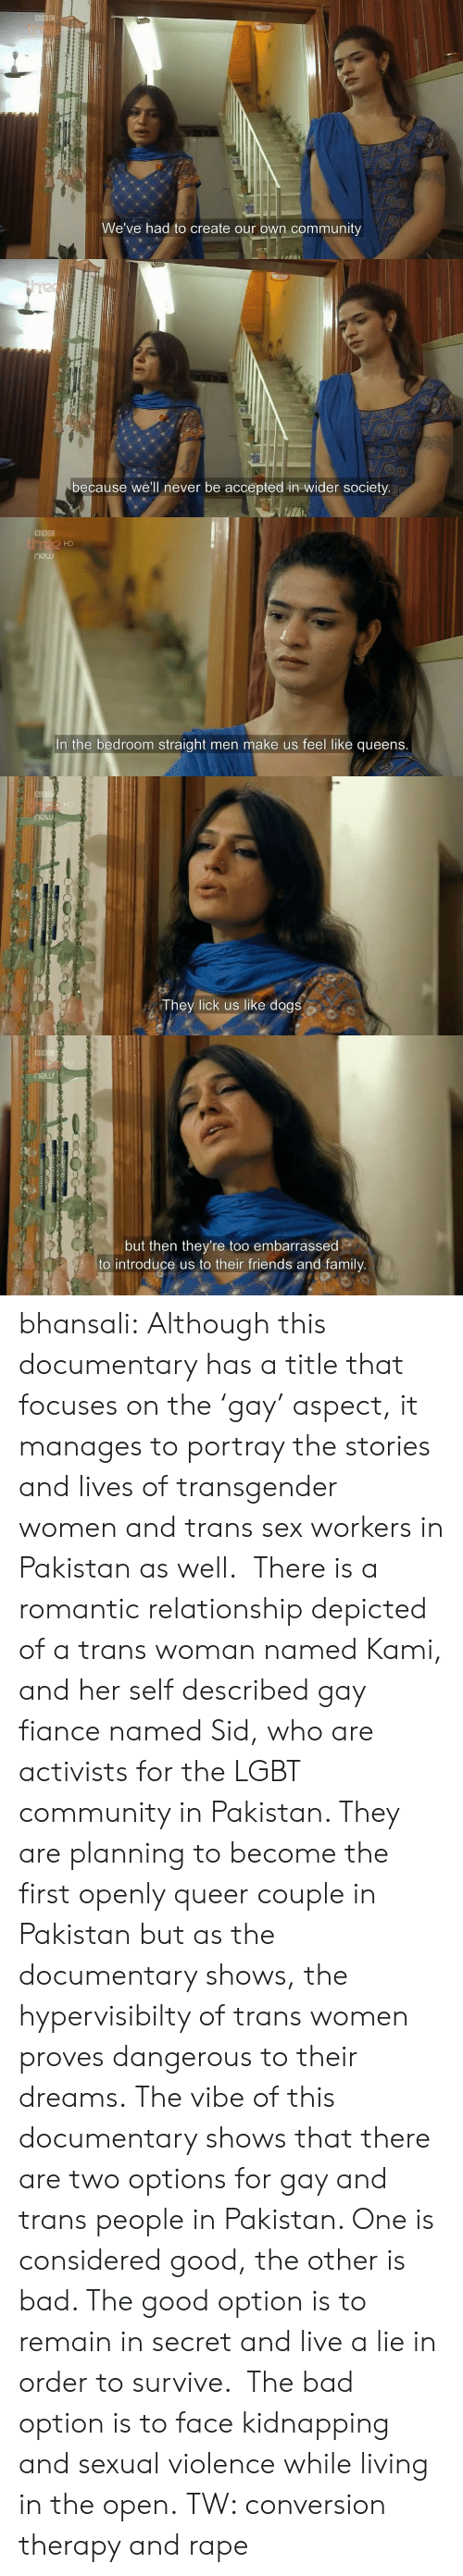 The Vibe: th  We've had to create our own community   because we'll never be accepted in wider society.   HD  In the bedroom straight men make us feel like queens.   They lick us like dogs   but then they're too embarrassed  to introduce us to their friends and family bhansali:  Although this documentary has a title that focuses on the'gay' aspect, it manages to portray the stories and lives of transgender women and trans sex workers in Pakistan as well. There is a romantic relationship depicted of a trans woman named Kami, and her self described gay fiance named Sid, who are activists for the LGBT community in Pakistan. They are planning to become the first openly queer couple in Pakistan but as the documentary shows, the hypervisibilty of trans women proves dangerous to their dreams. The vibe of this documentary shows that there are two options for gay and trans people in Pakistan. One is considered good, the other is bad. The good option is to remain in secret and live a lie in order to survive. The bad option is to face kidnapping and sexual violence while living in the open. TW: conversion therapy and rape